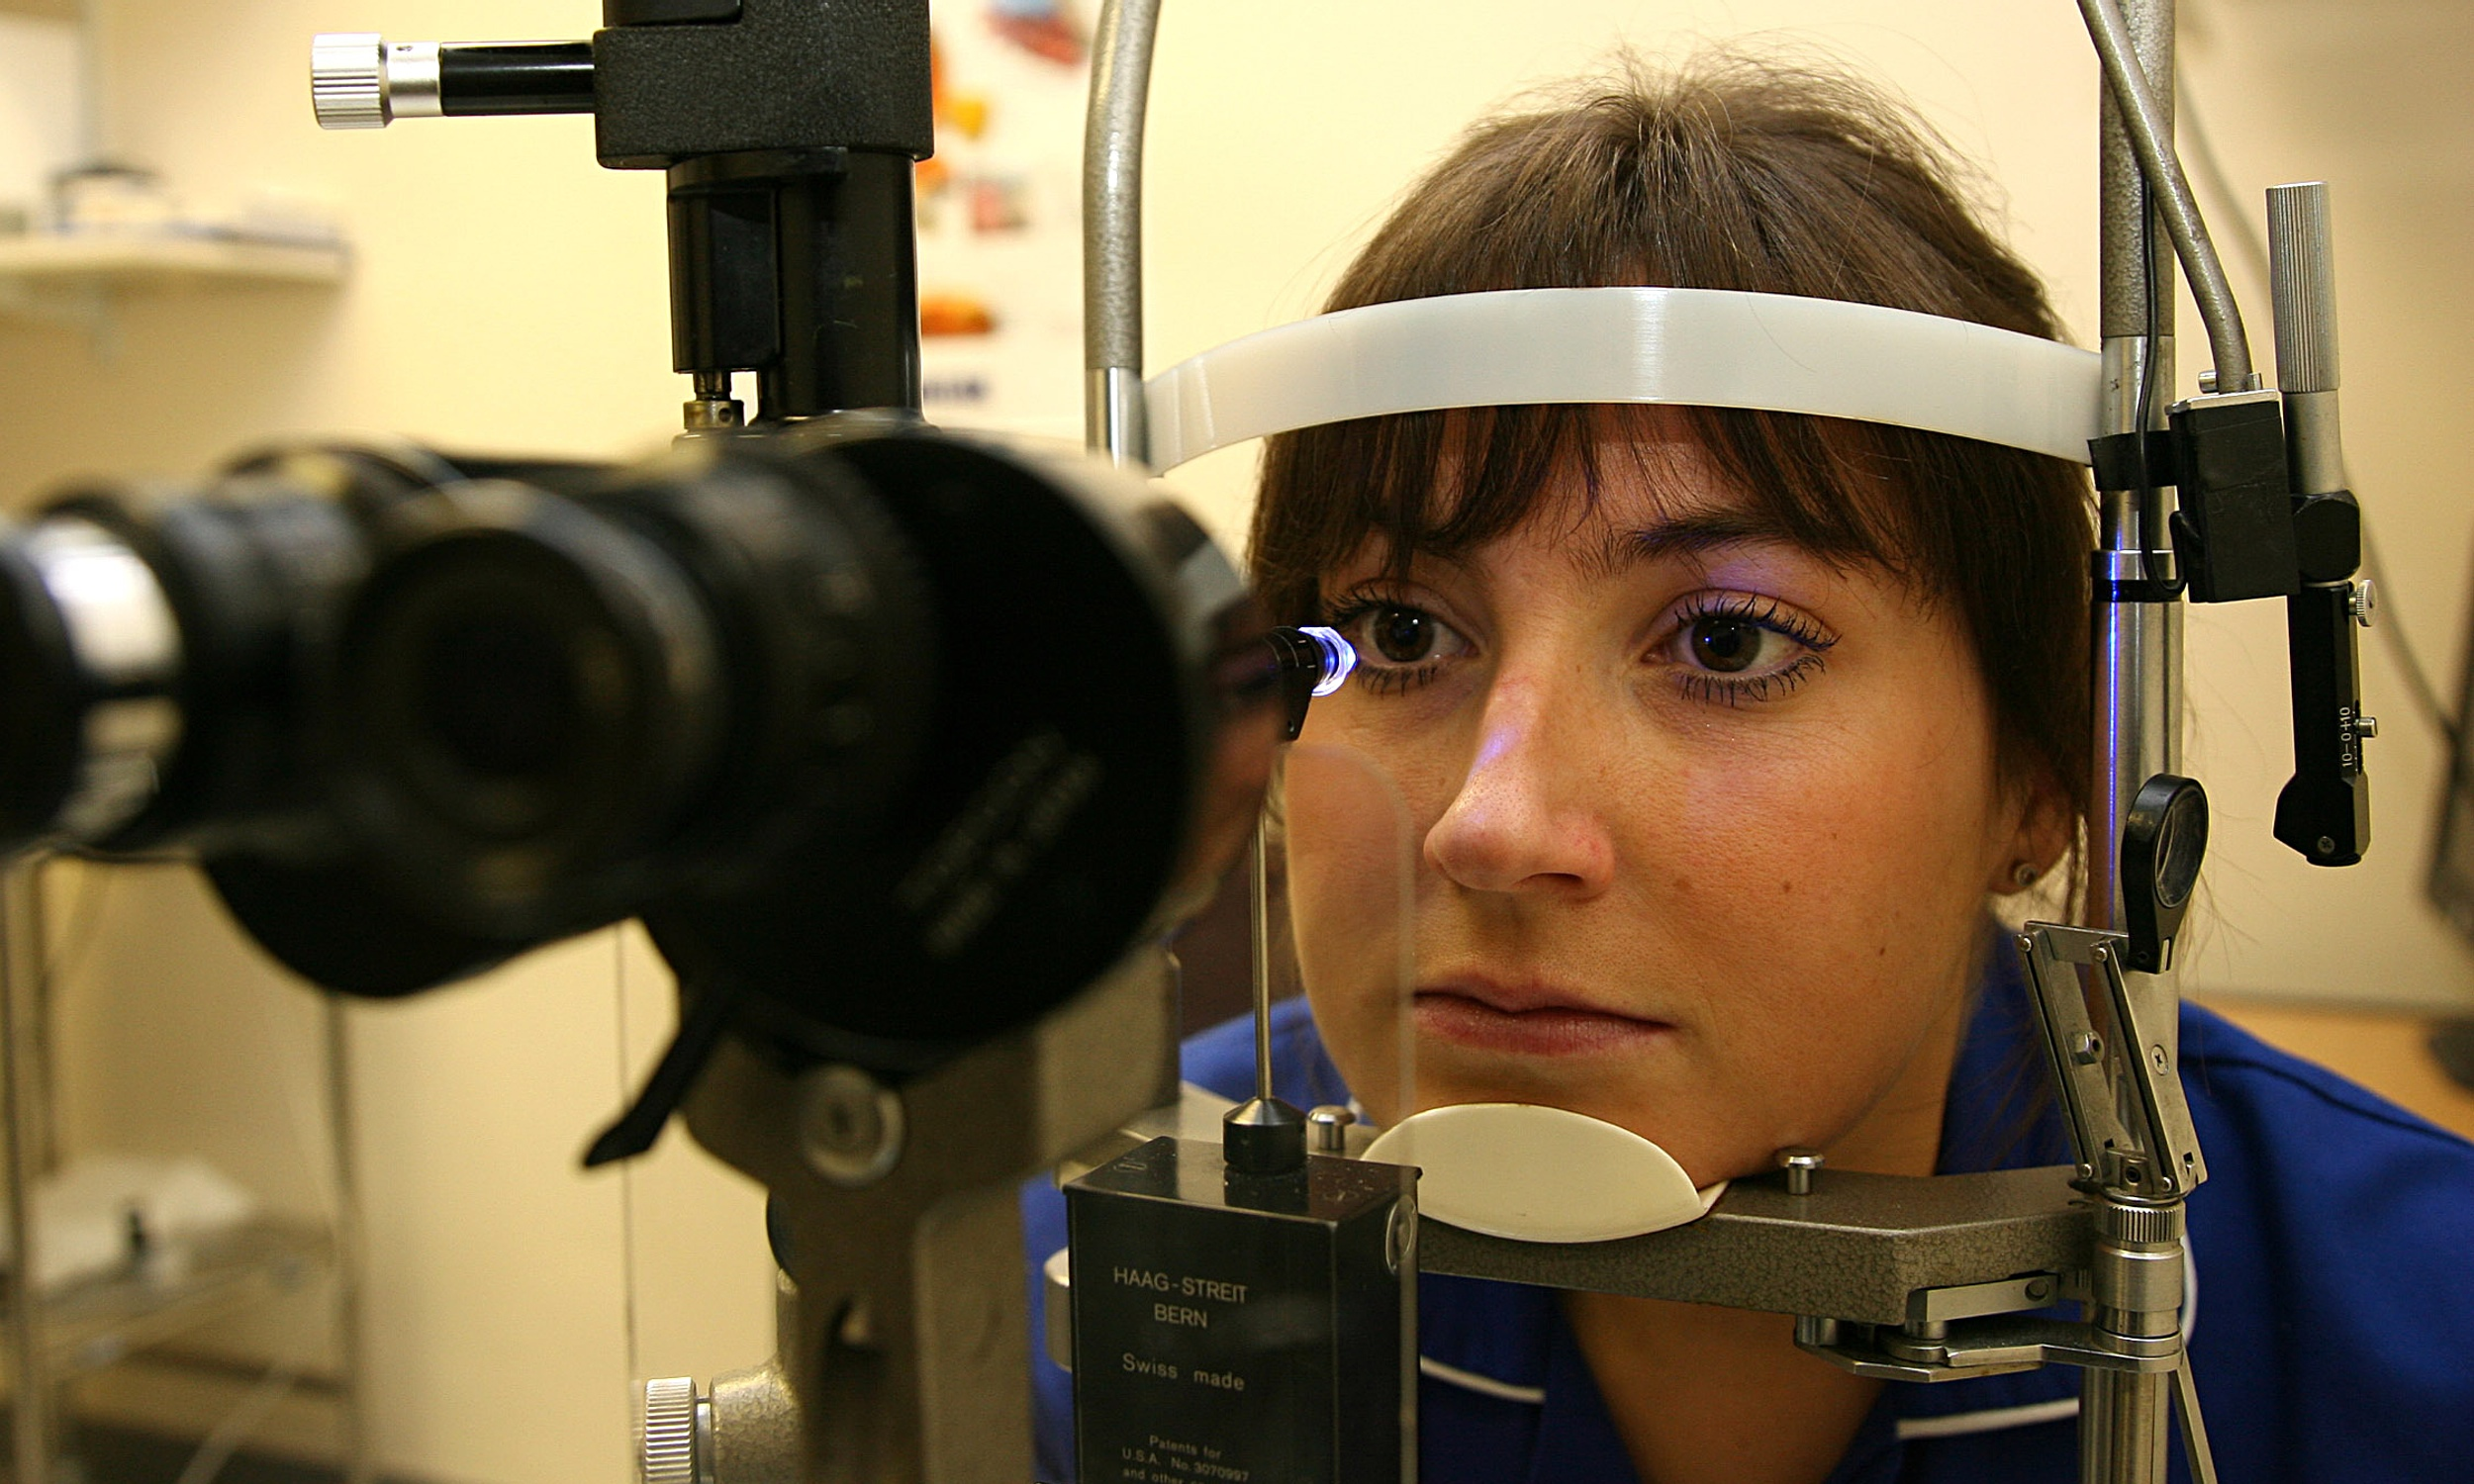 Eye tests could detect early Alzheimer's